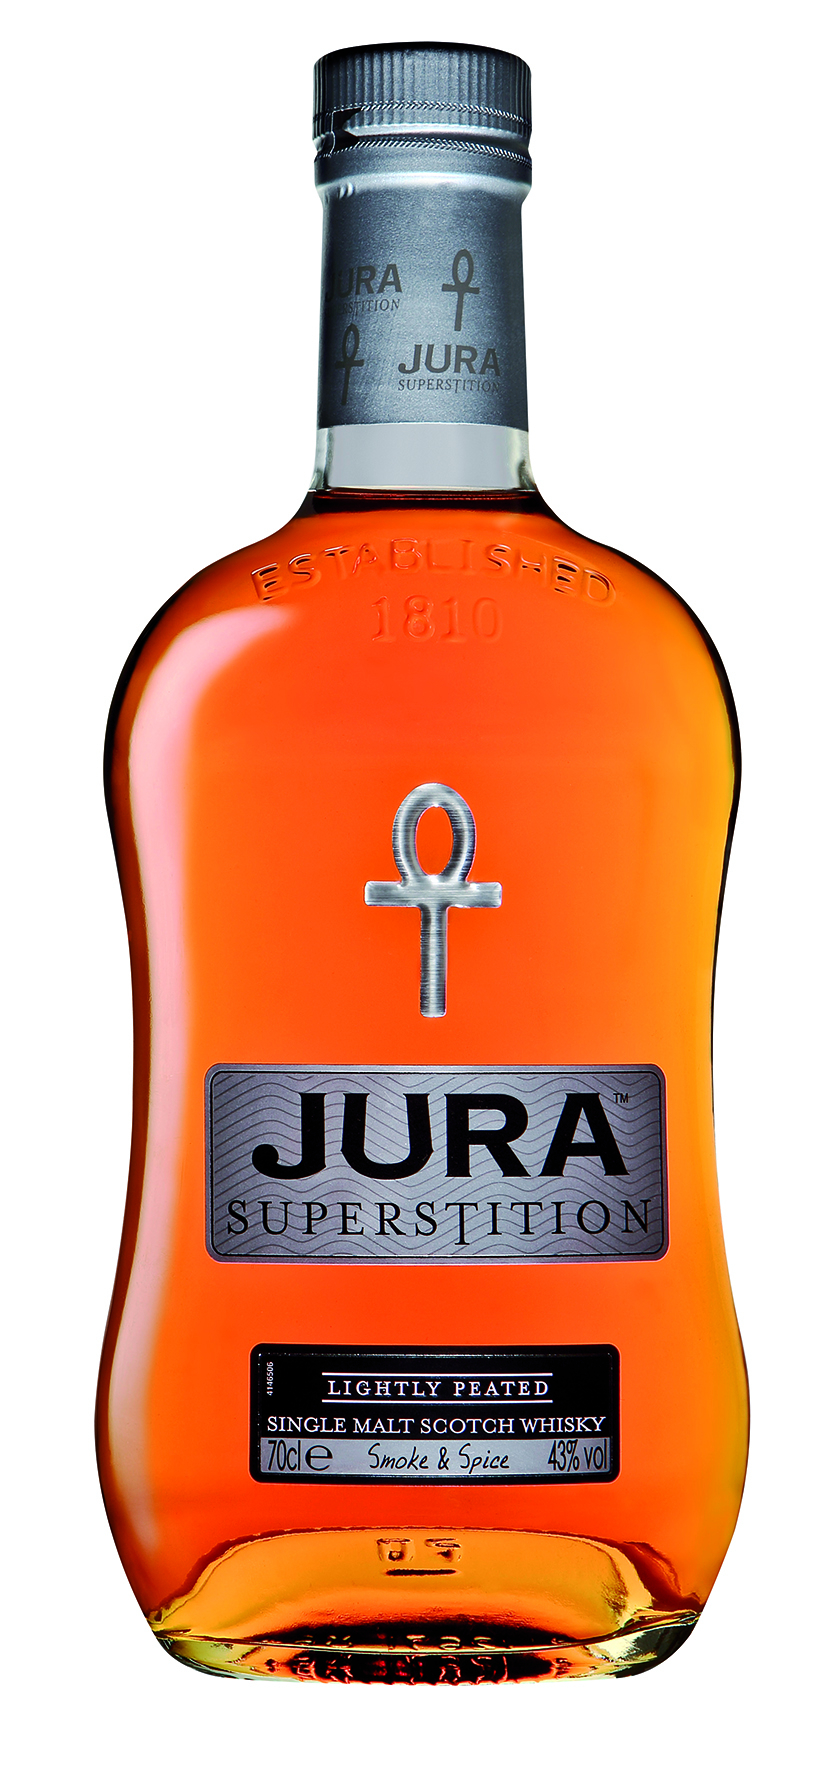 Isle of Jura Superstition Whisky